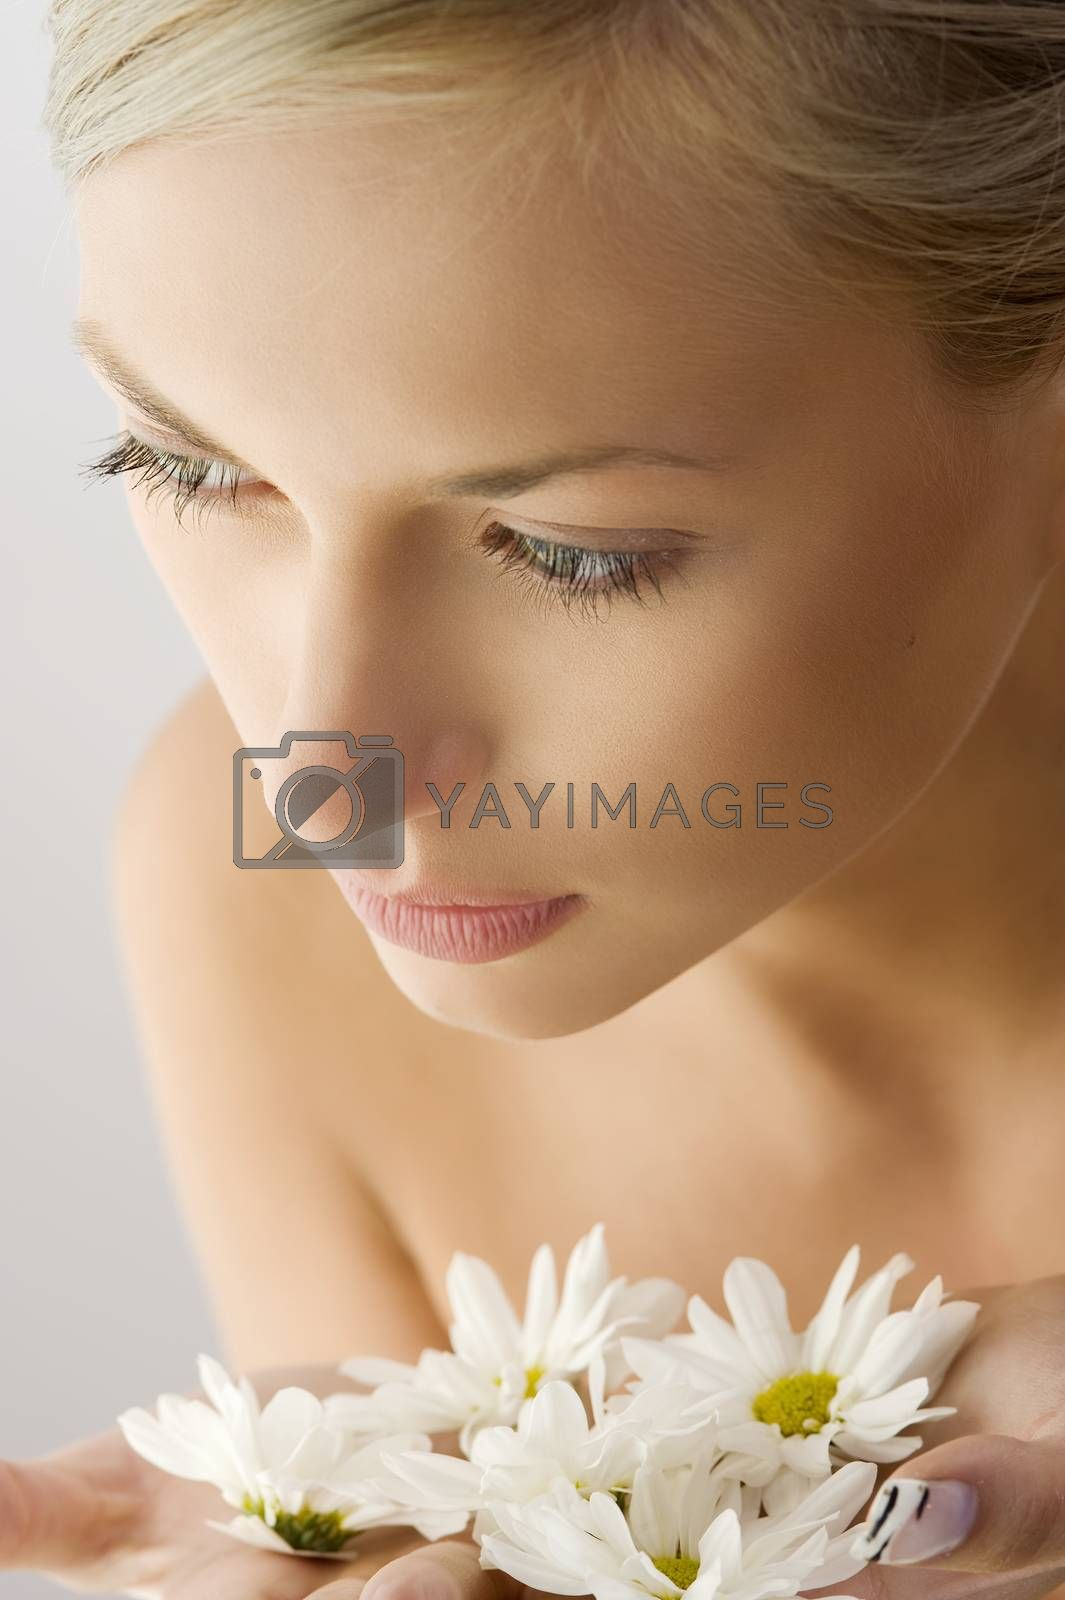 Royalty free image of beauty girl with flower by fotoCD